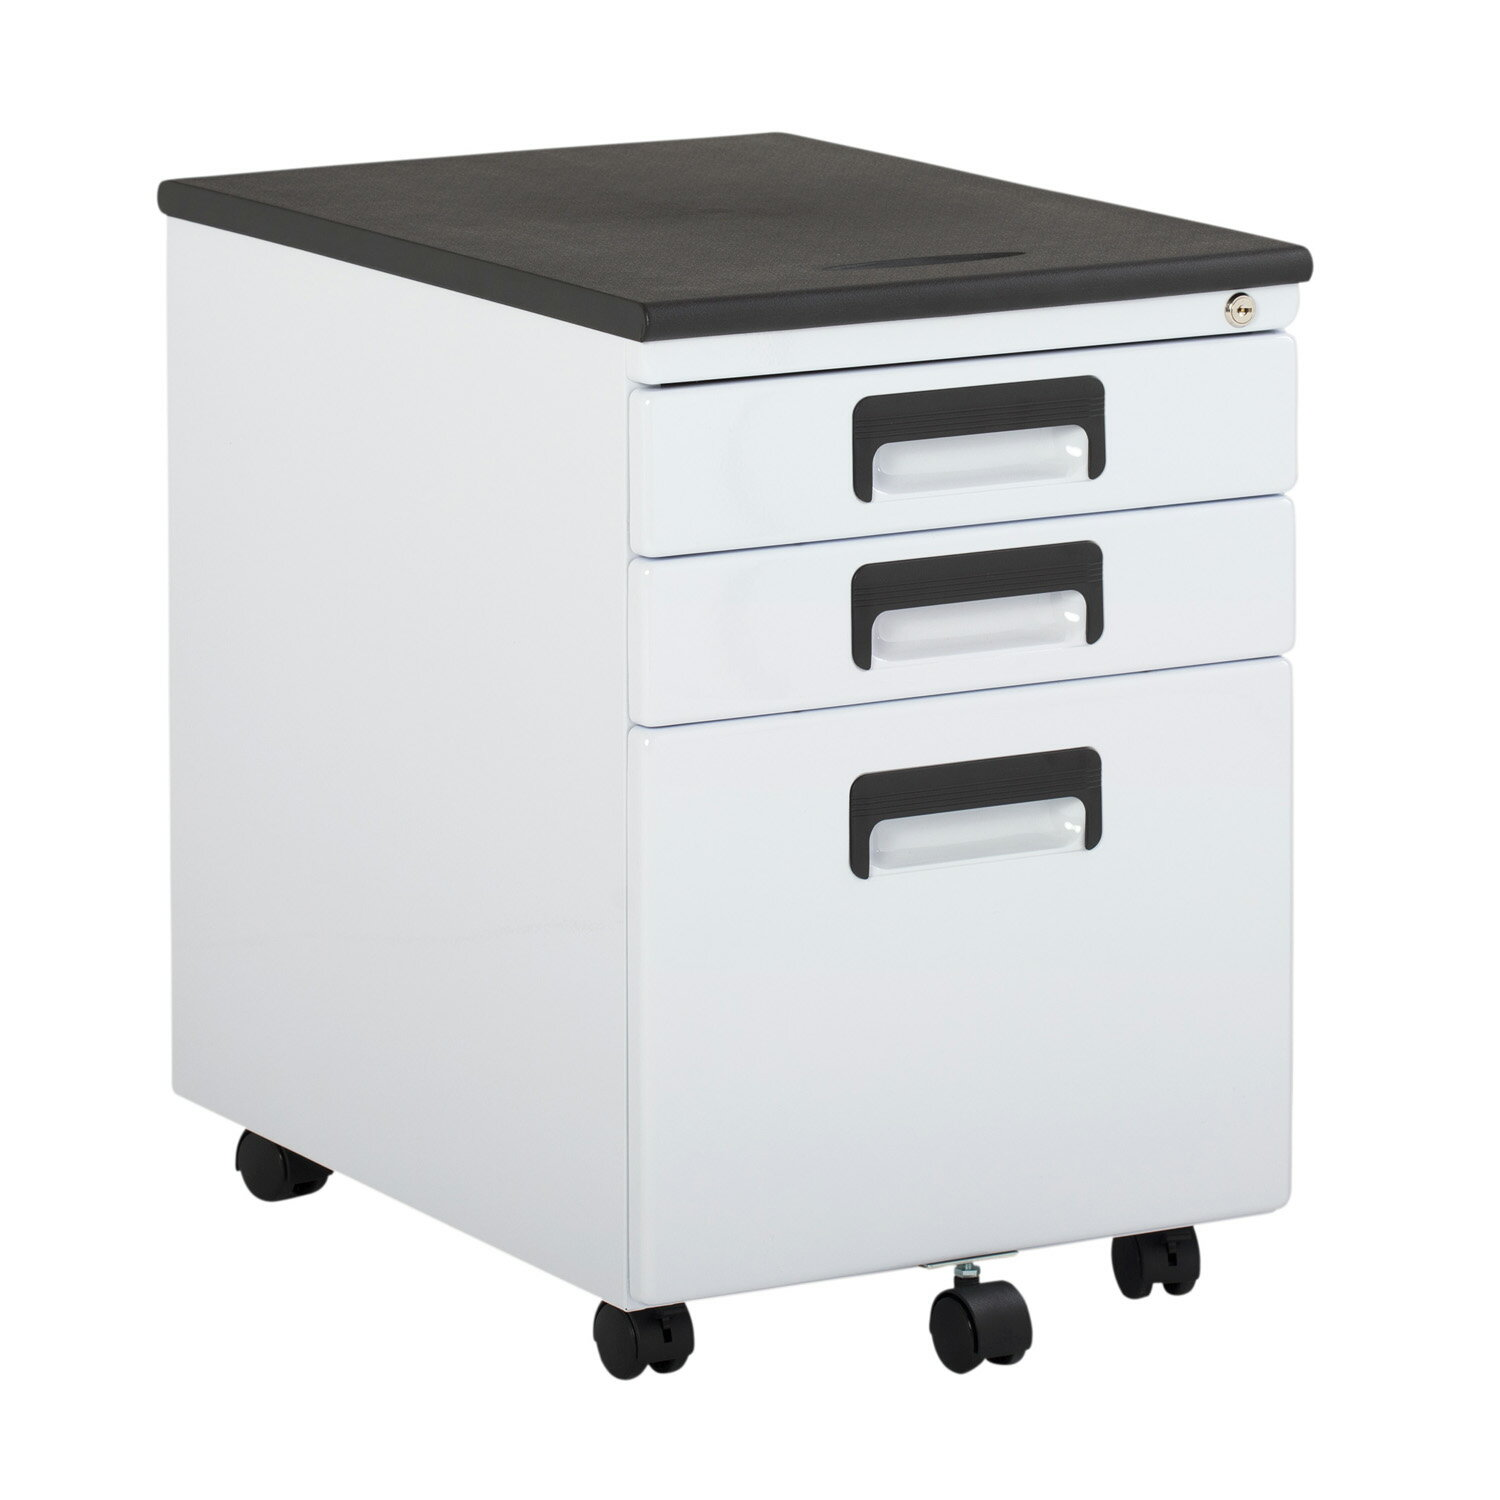 Charmant Offex 3 Drawer Metal Rolling File Cabinet With Locking Drawers    White/Black 0